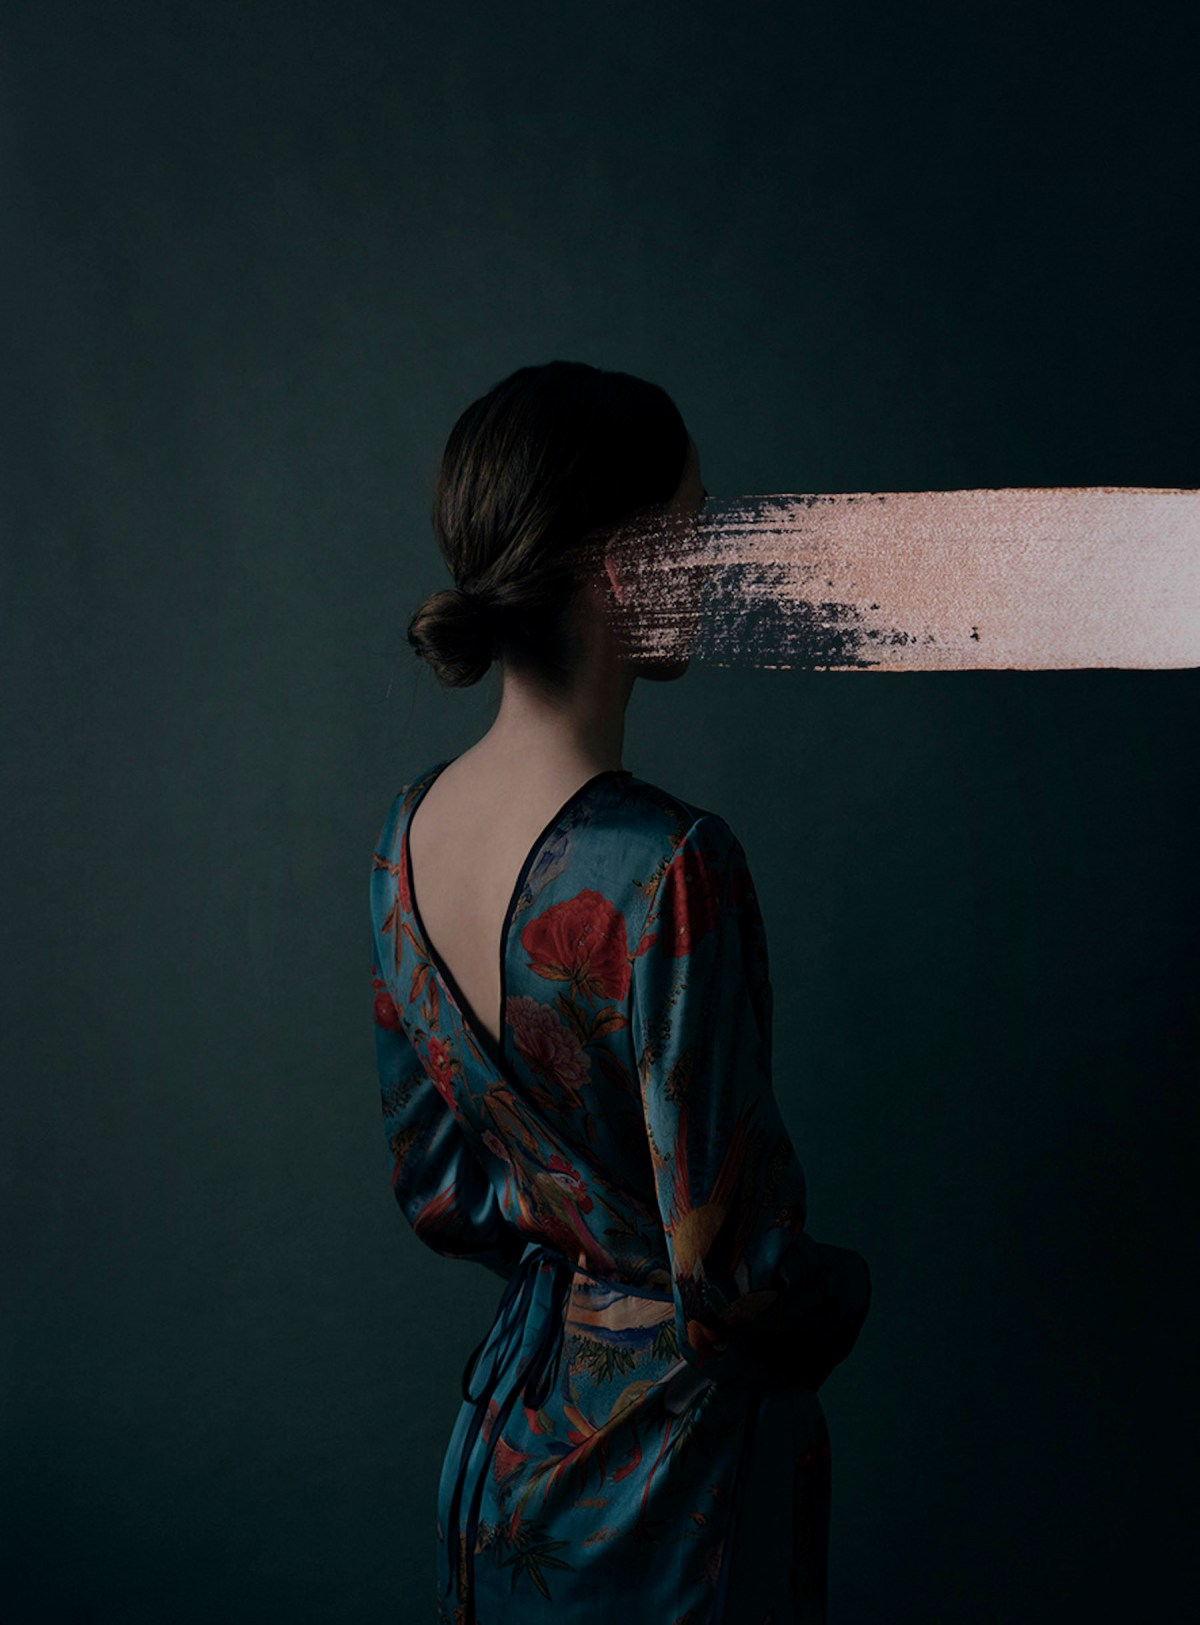 ignant-photography-andrea-torres-balaguer-the-unknown-04